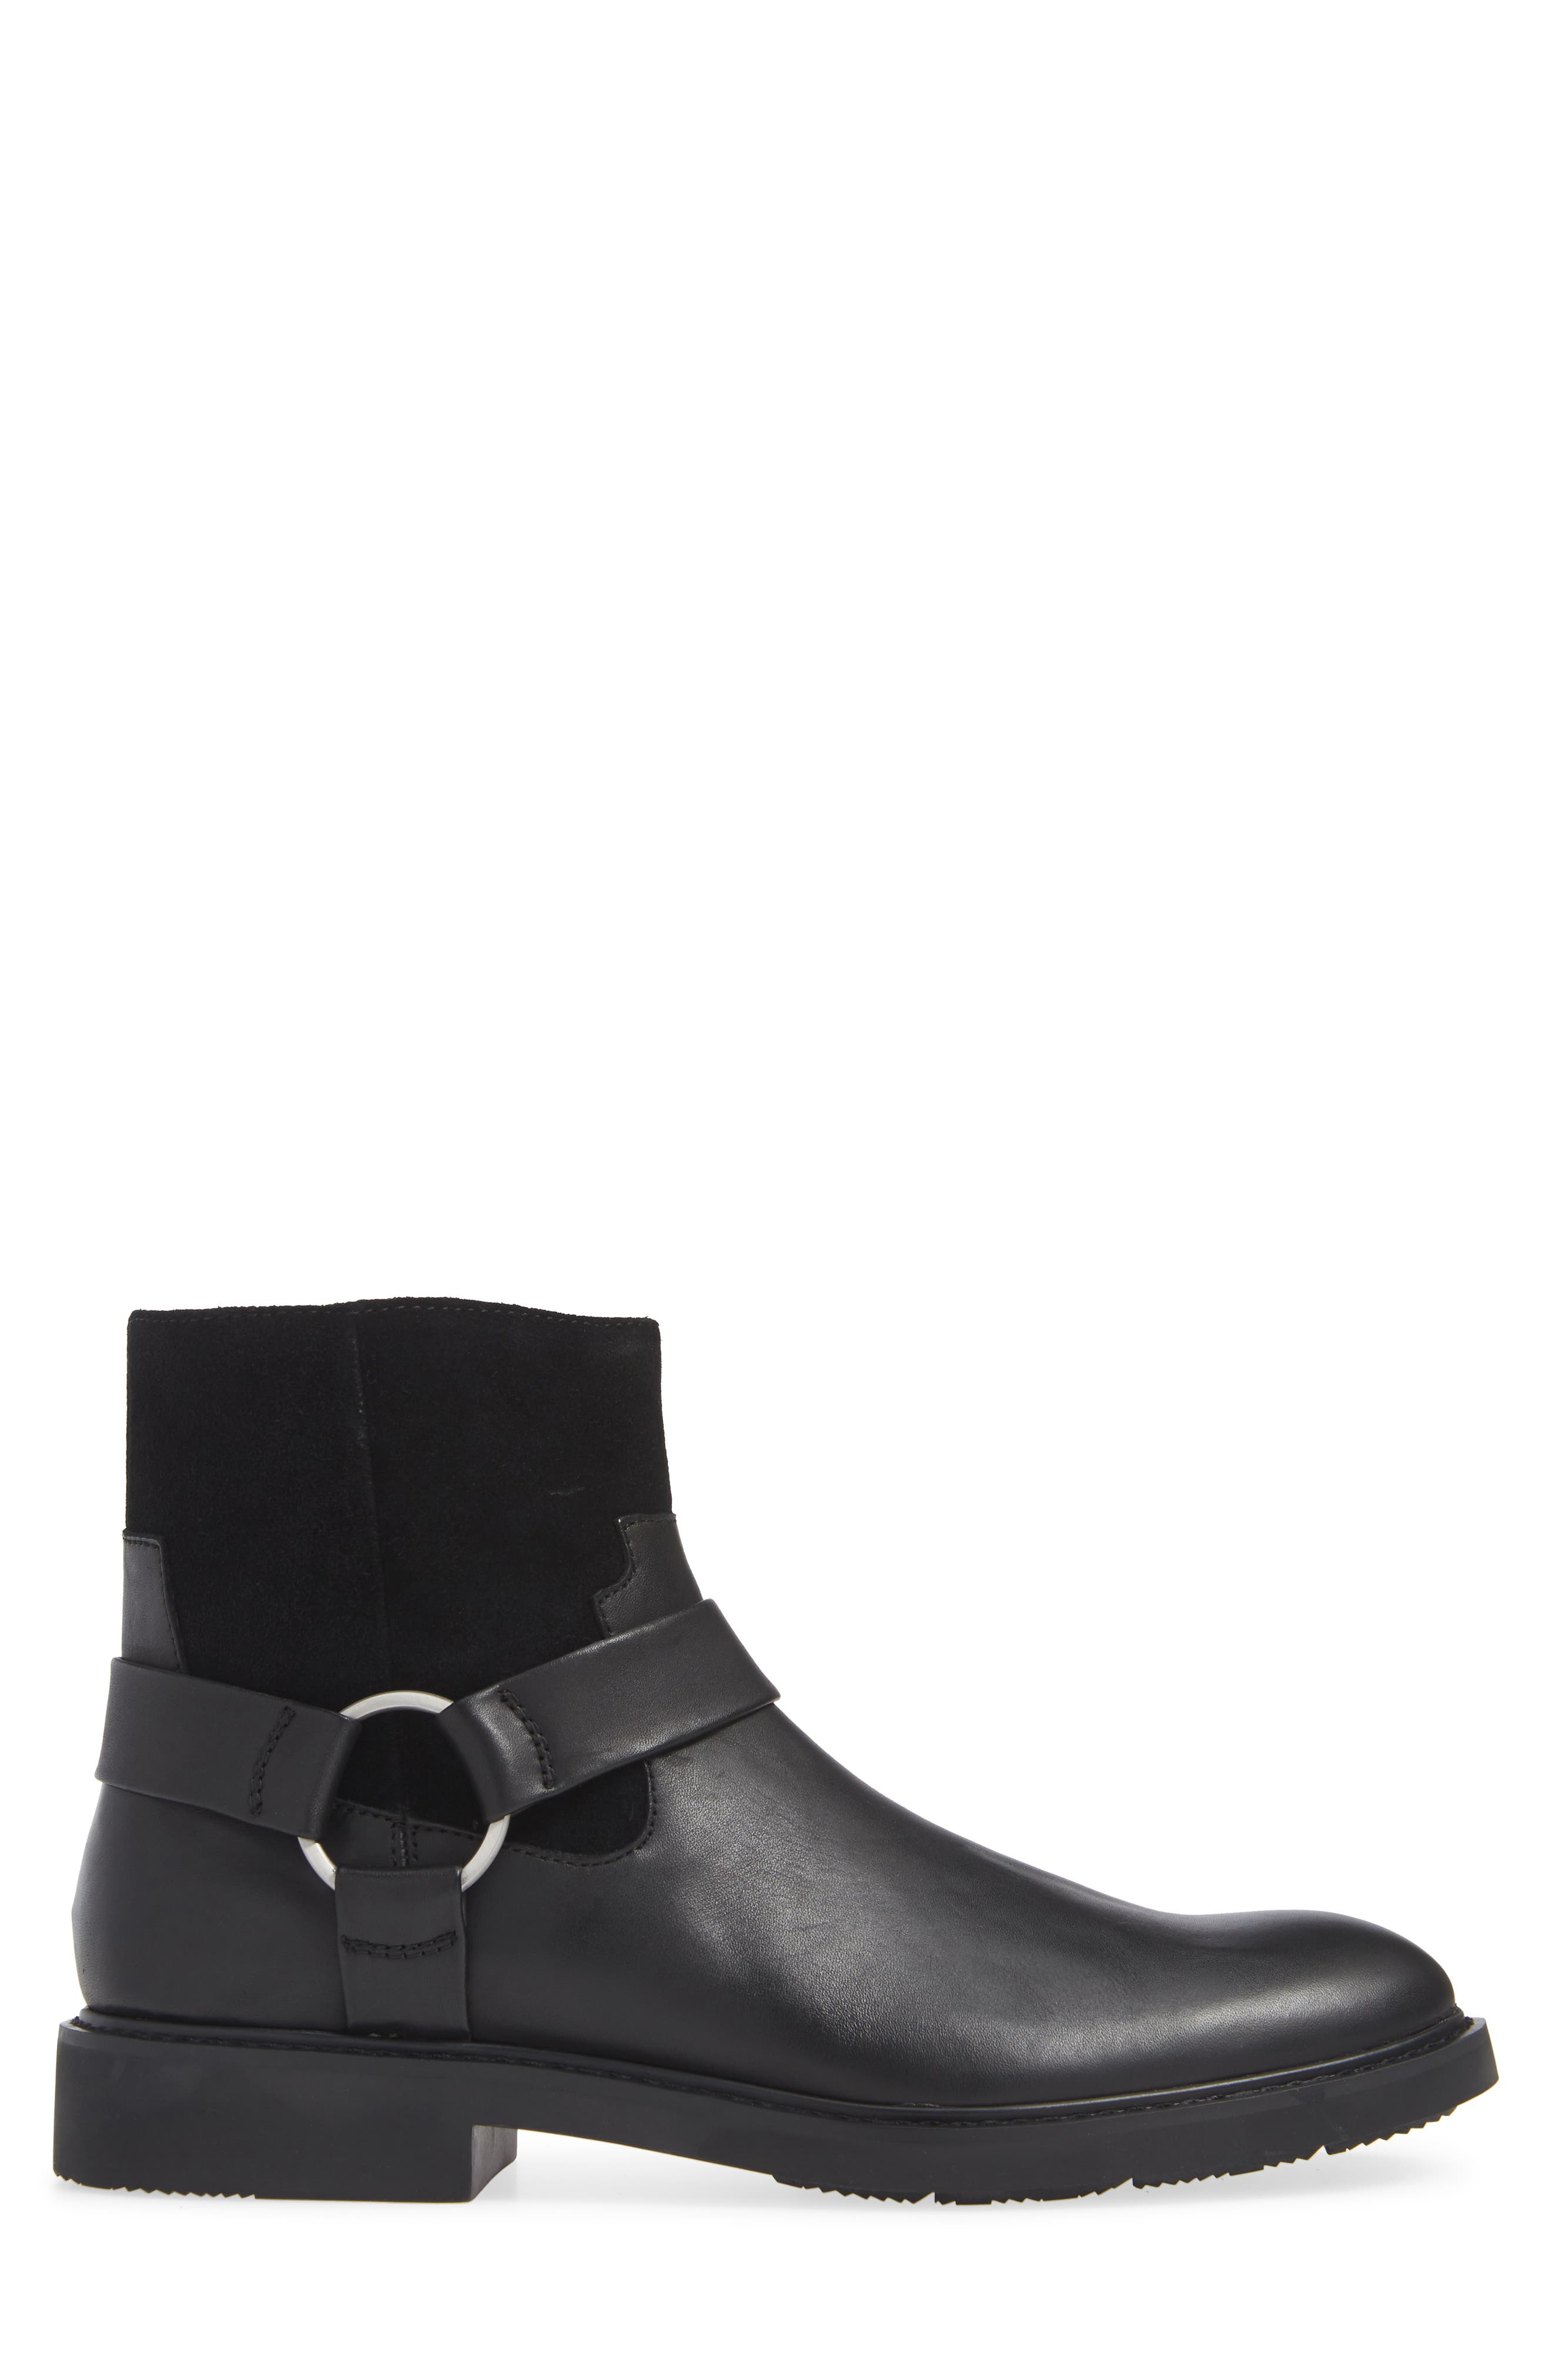 Vergil Zip Boot,                             Alternate thumbnail 3, color,                             001